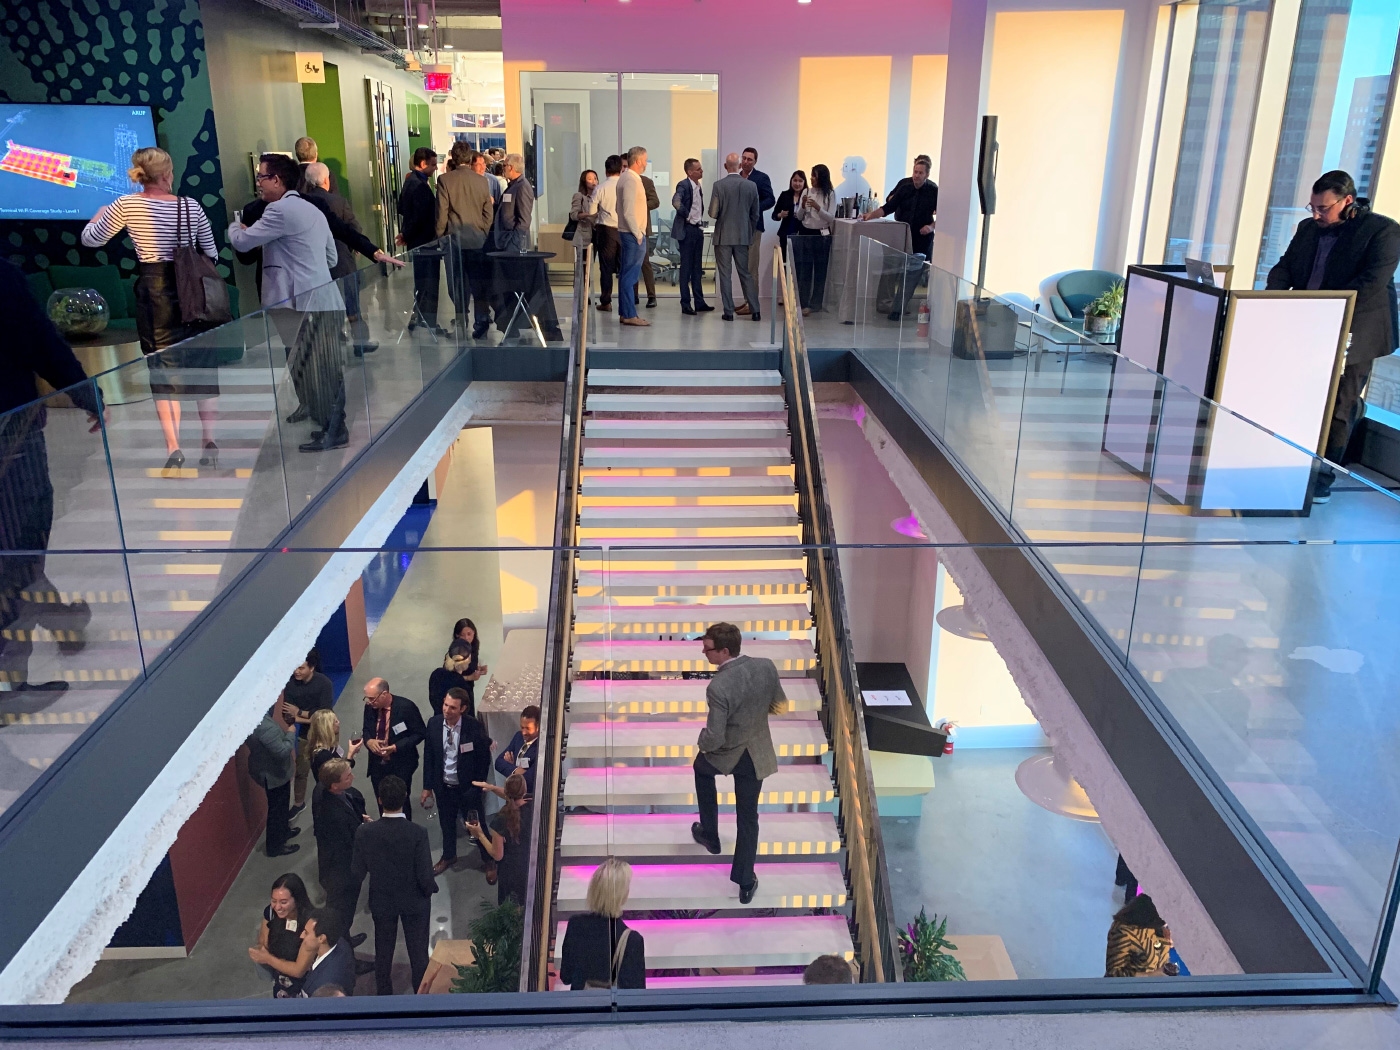 People ascending a staircase in the Arup office